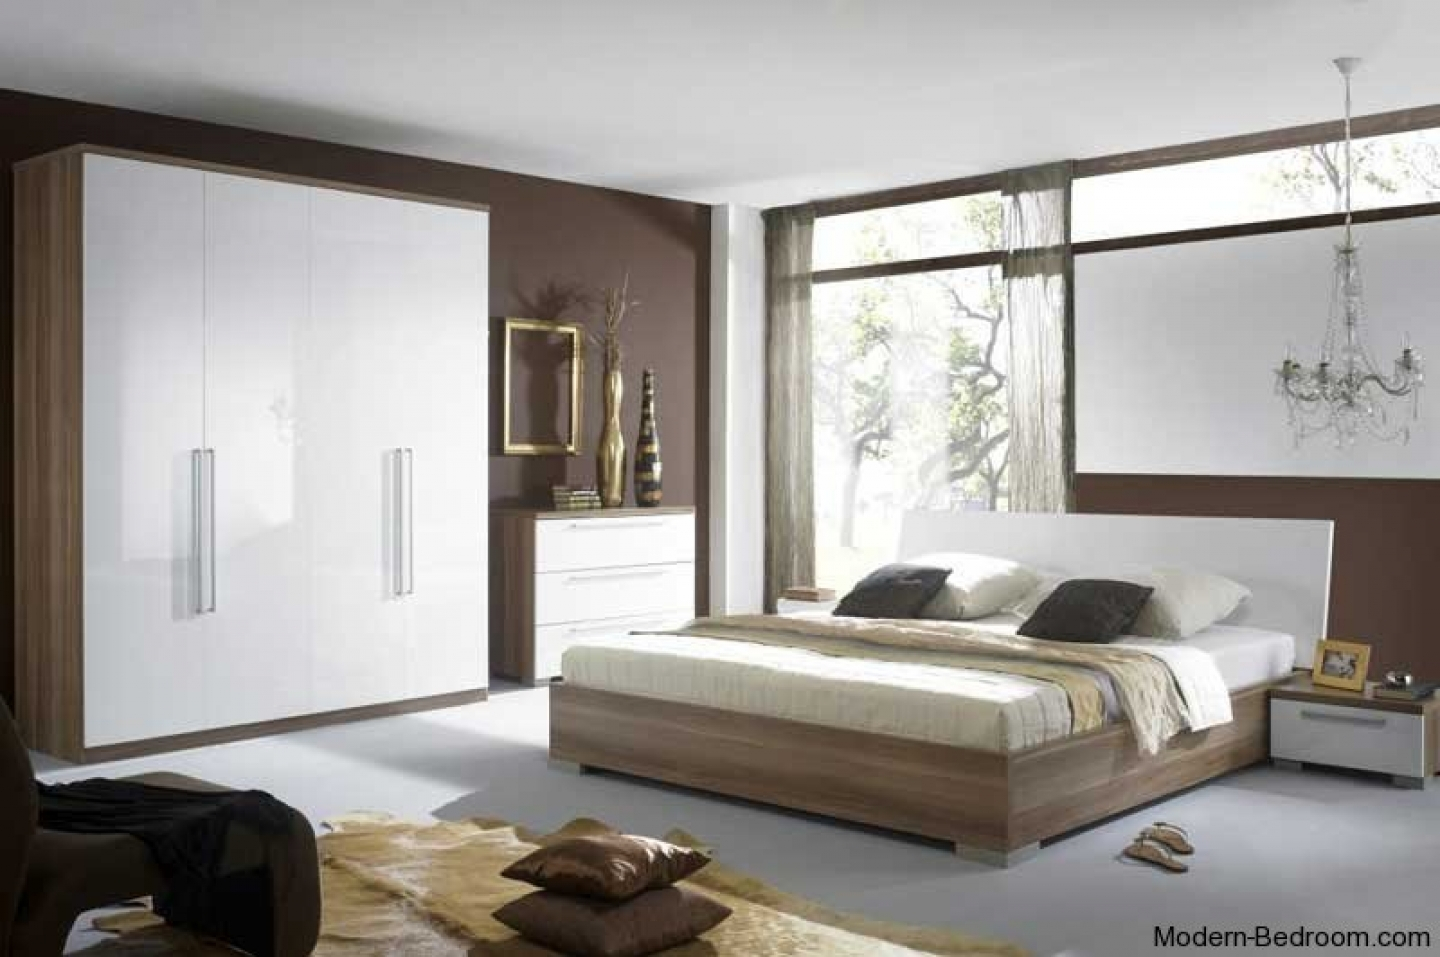 Ultra Modern Hotel Bedrooms Resorts Interior Design Idea Tierra pertaining to 10 Clever Ways How to Build Ultra Modern Bedrooms